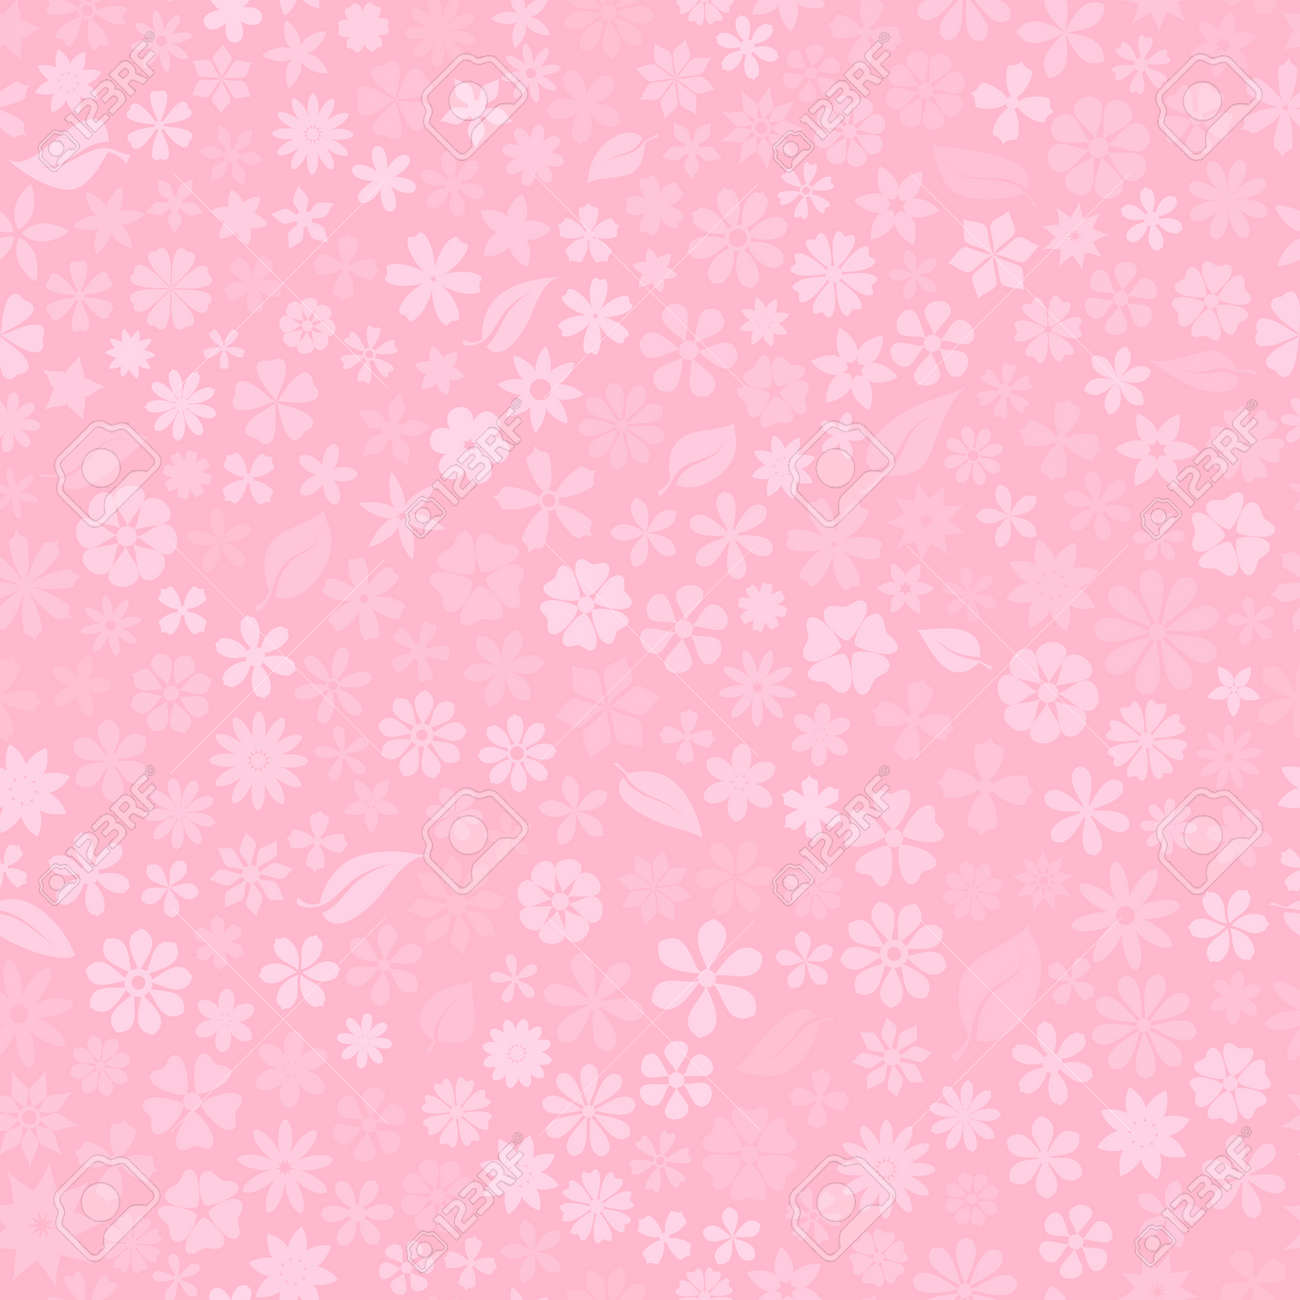 Seamless pattern with floral texture of small flowers in pink colors - 141989637